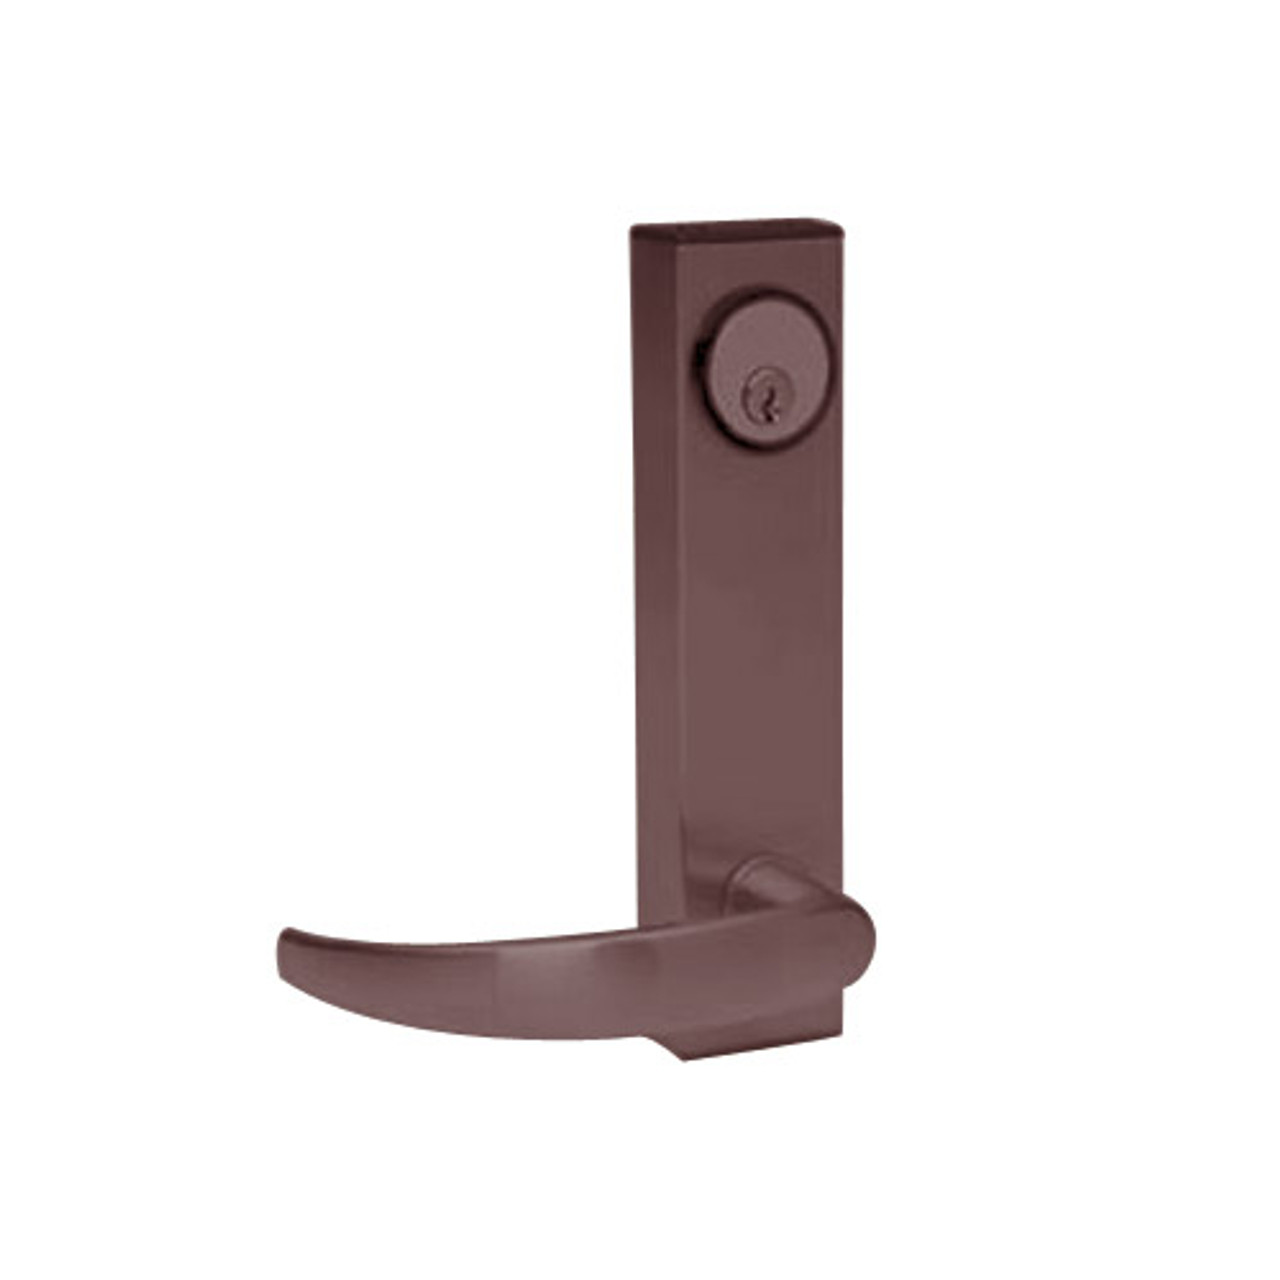 3080E-01-0-31-55 US10B Adams Rite Electrified Entry Trim with Curve Lever in Oil Rubbed Bronze Finish